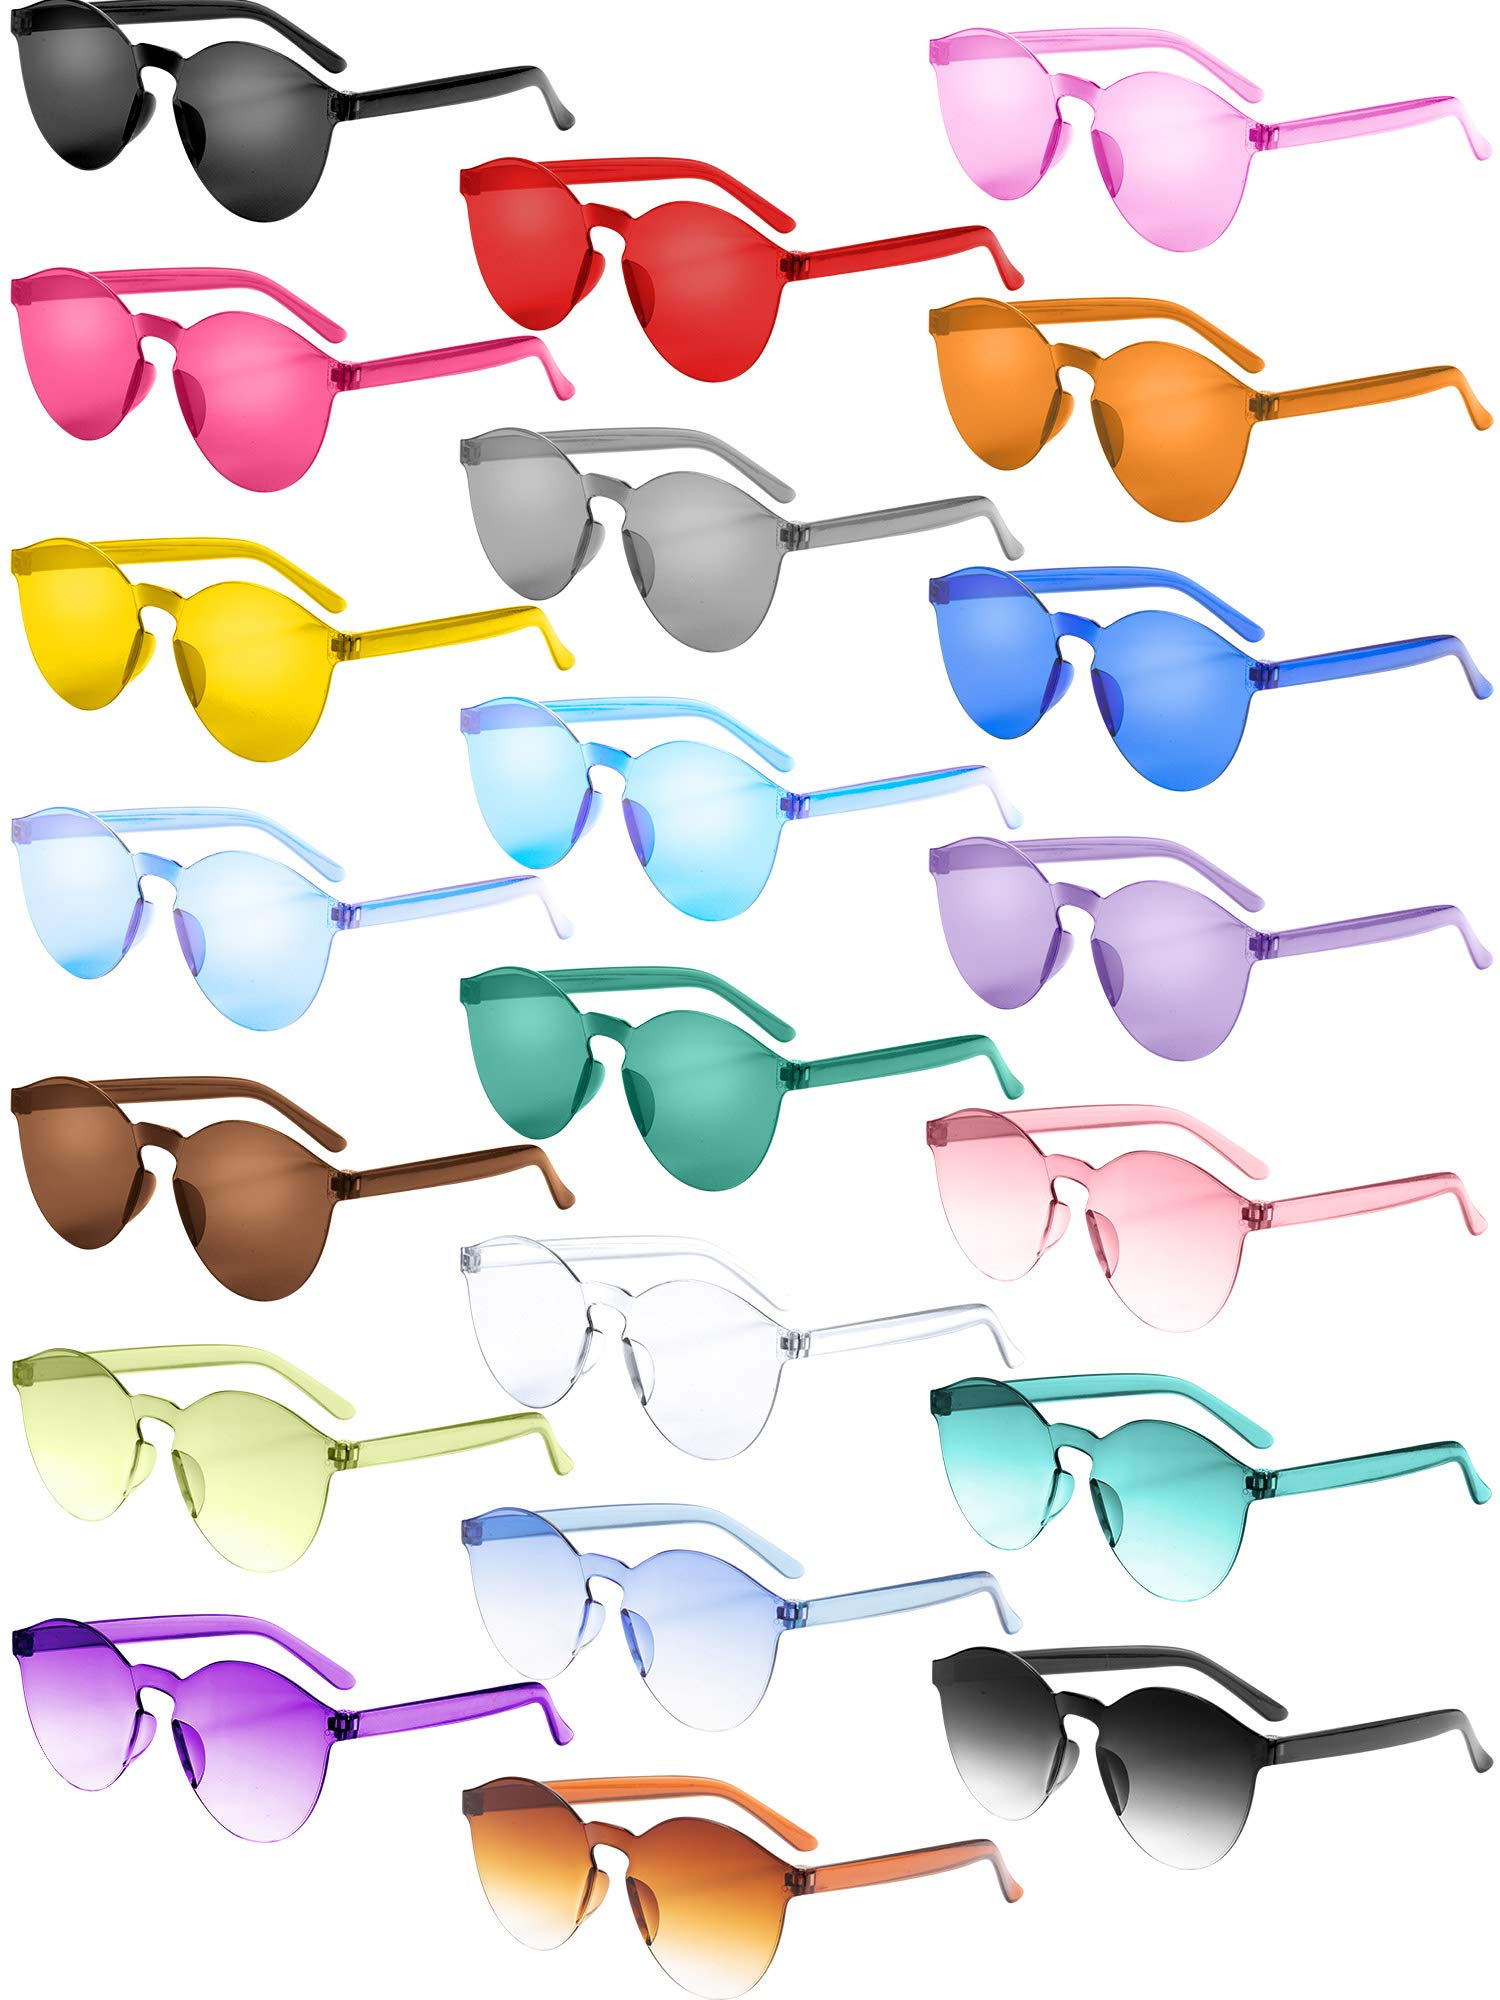 21 Pieces Round Rimless Sunglasses One Piece Transparent Candy Color Tinted Eyewear by Gejoy